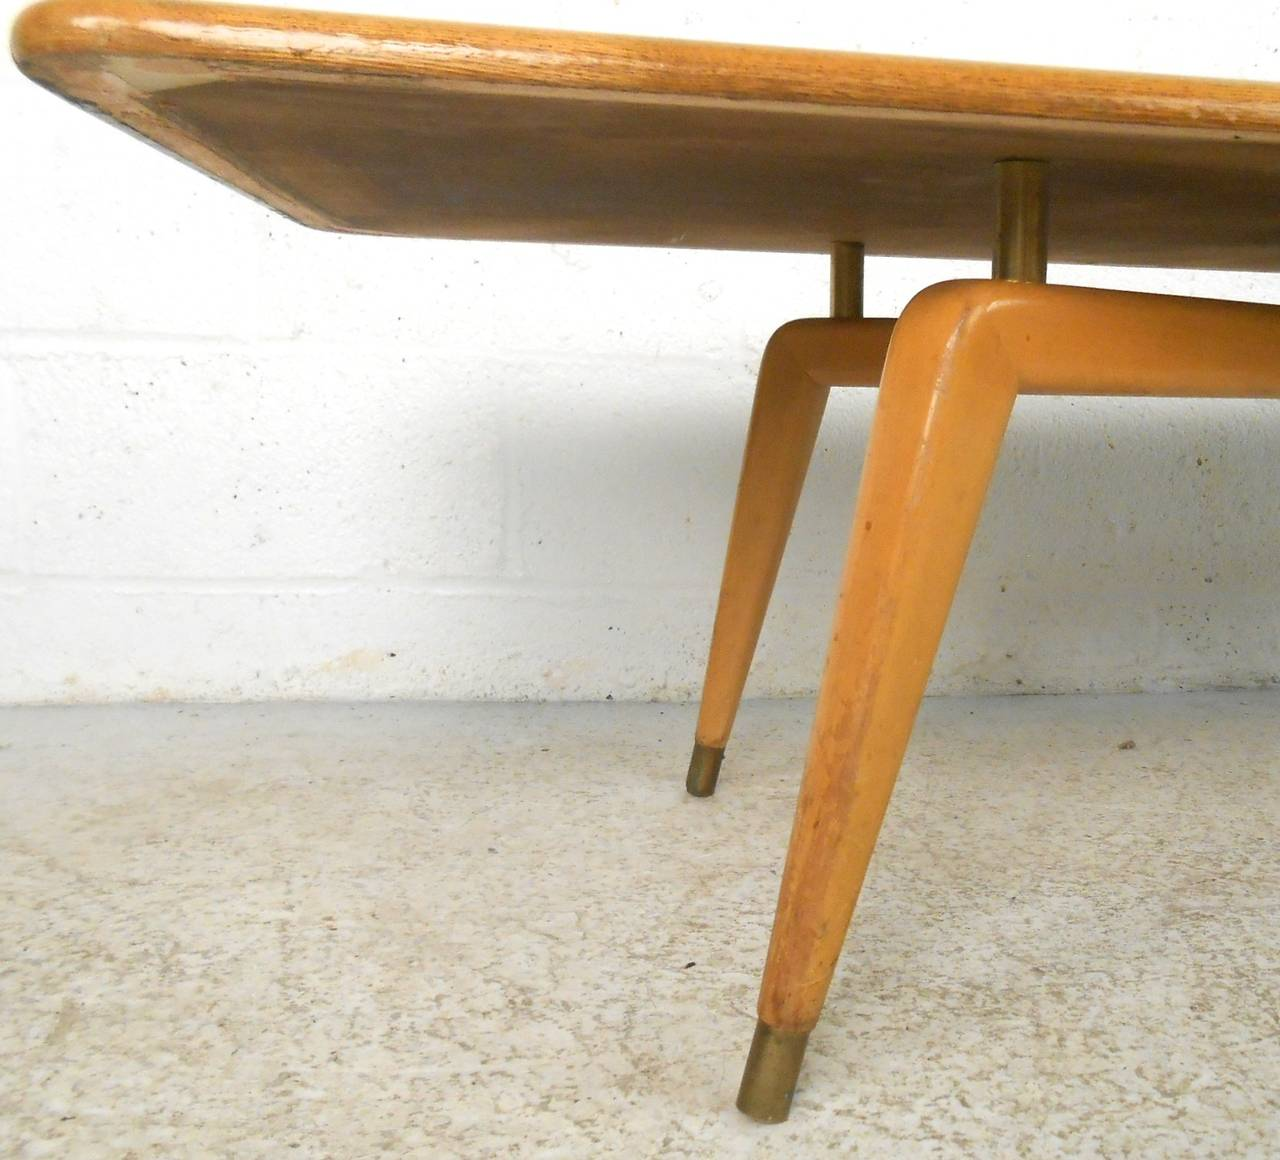 Unique Mid Century Modern Coffee Table With Brass Trim For Sale At 1stdibs